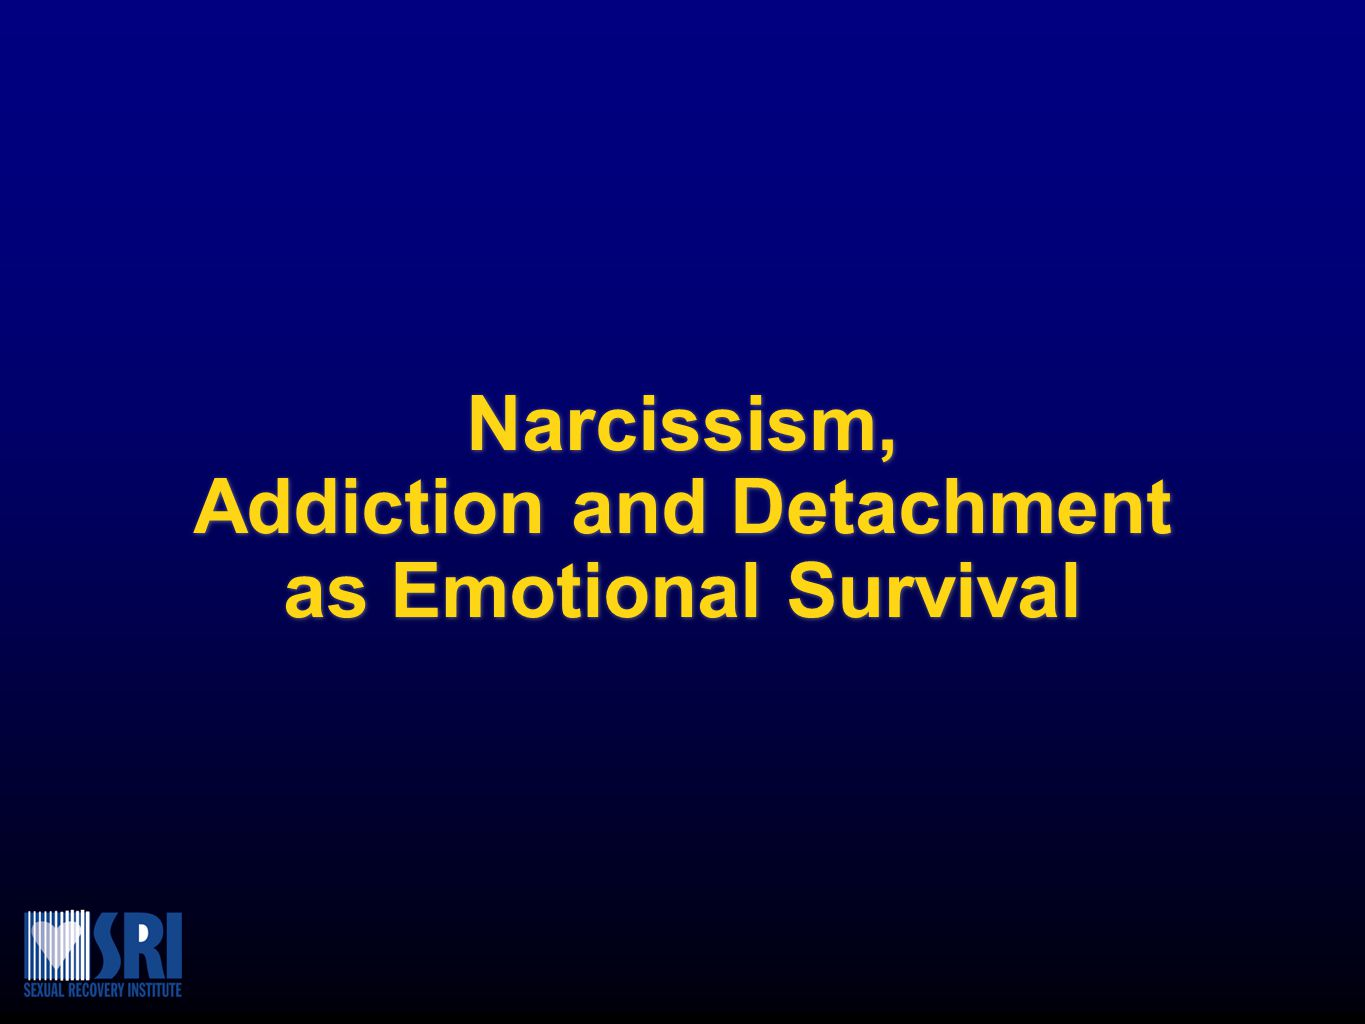 Addiction and Detachment as Emotional Survival